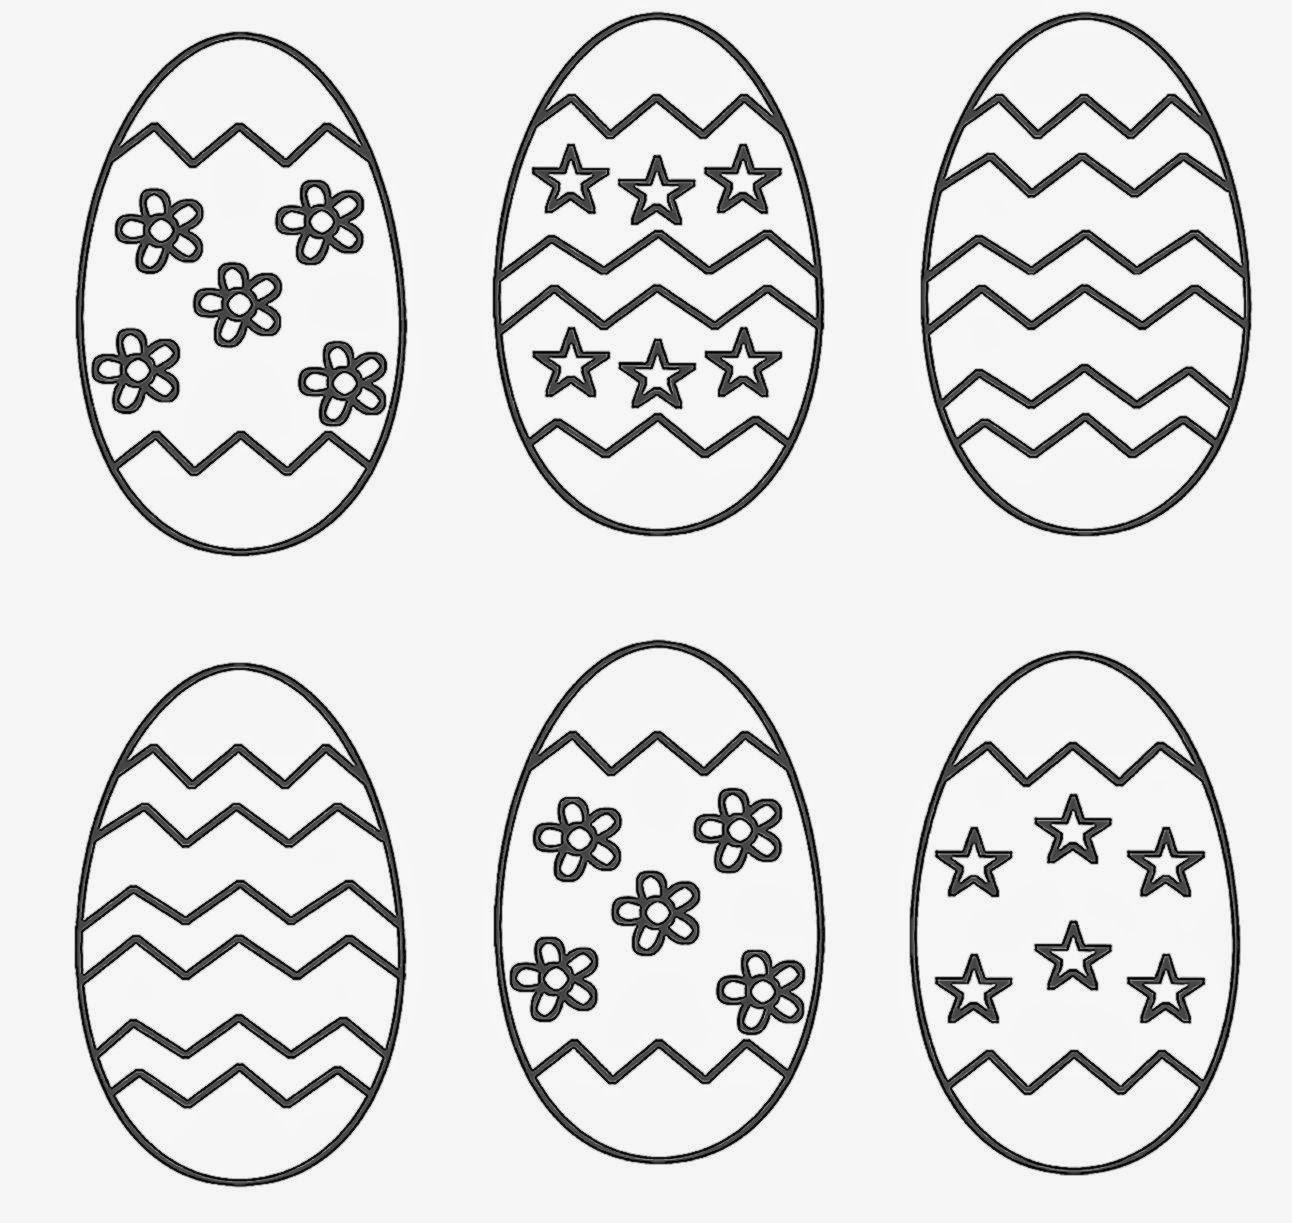 Adult Cute Coloring Pages Of Easter Eggs Gallery Images top easter egg coloring sheet free pages printable gallery images